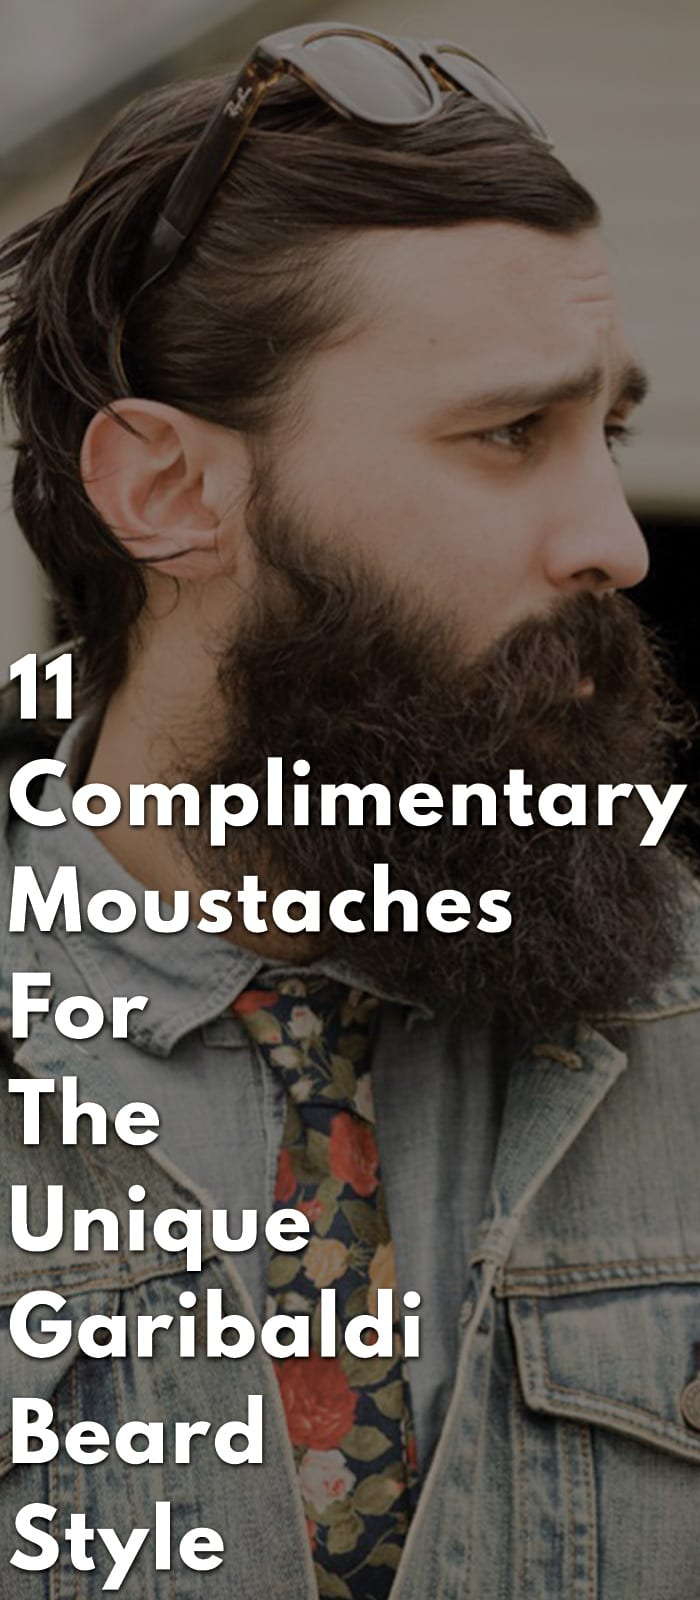 11-Complimentary-Moustaches-For-The-Unique-Garibaldi-Beard-Style.